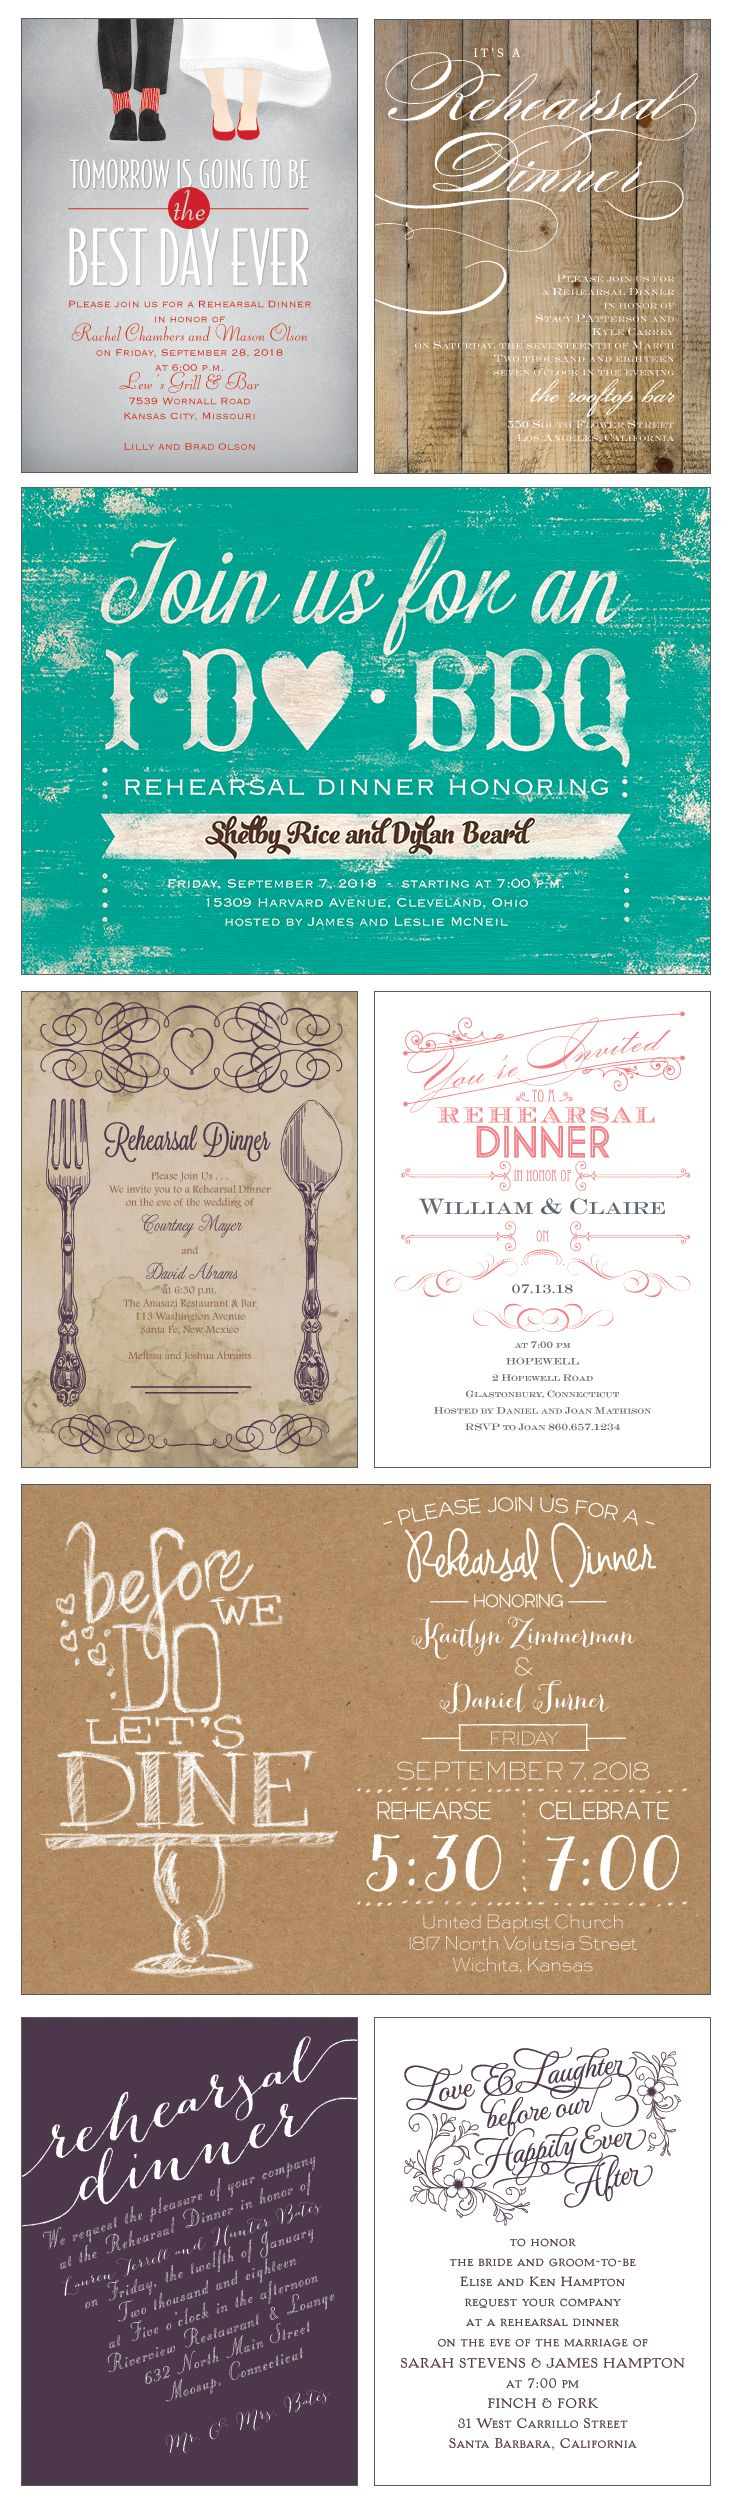 Celebrate The Day BEFORE Best Ever With A Rehearsal Dinner Invite Personalized In Your